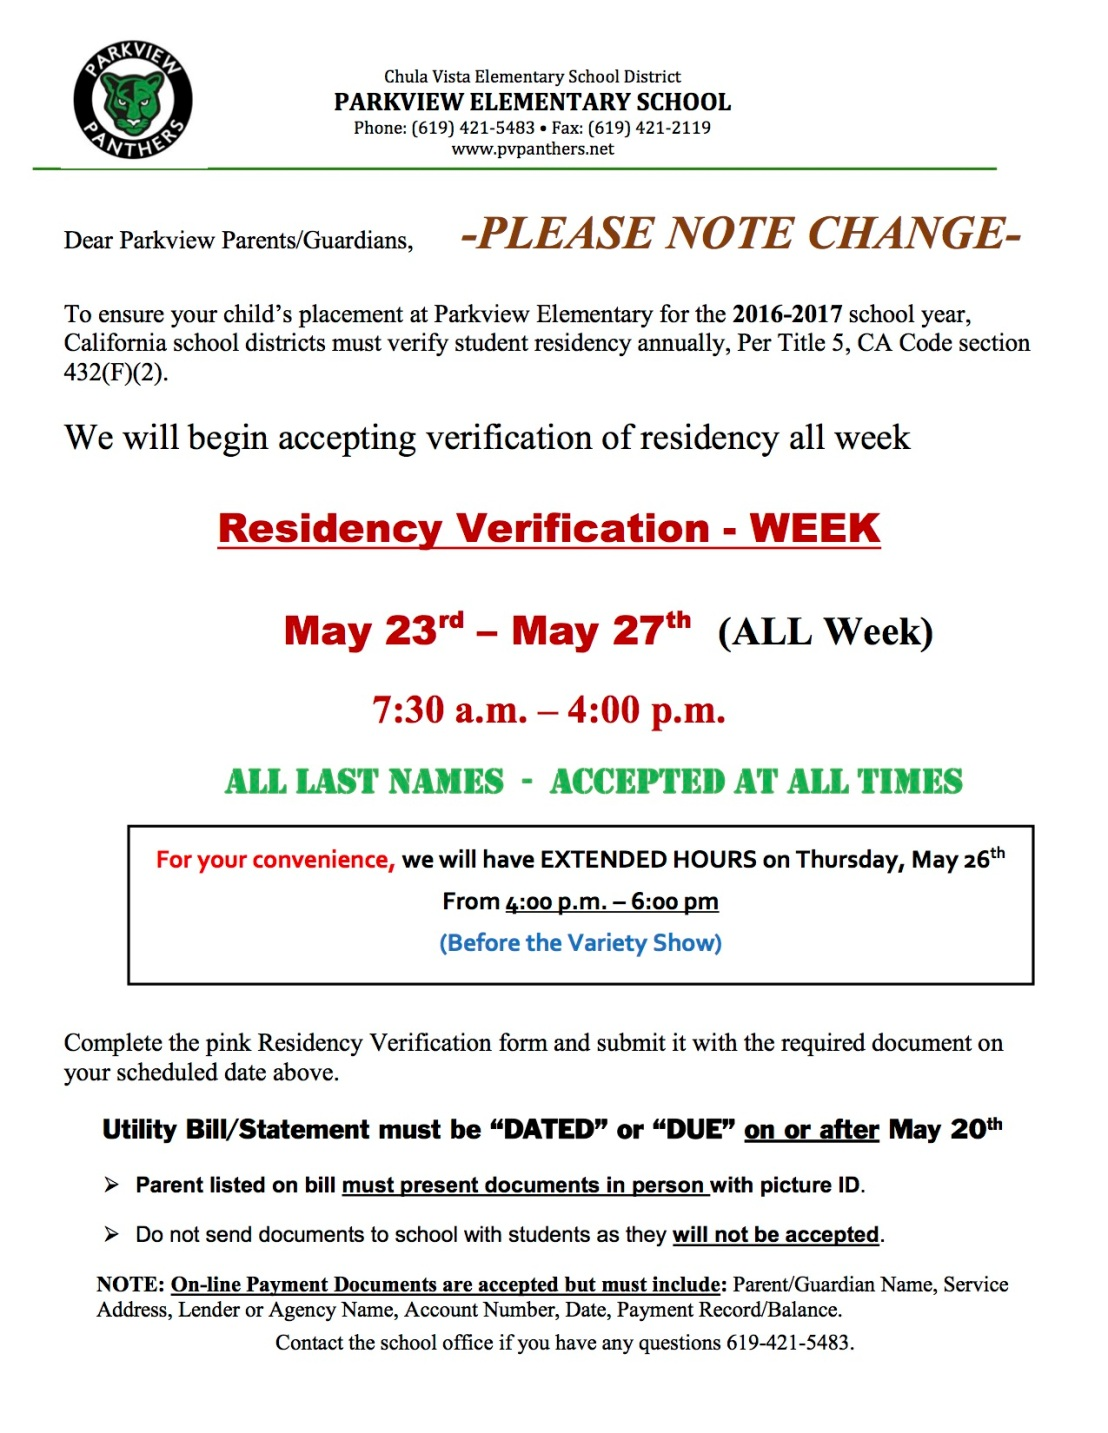 2016-17 Residency WEEK Notice